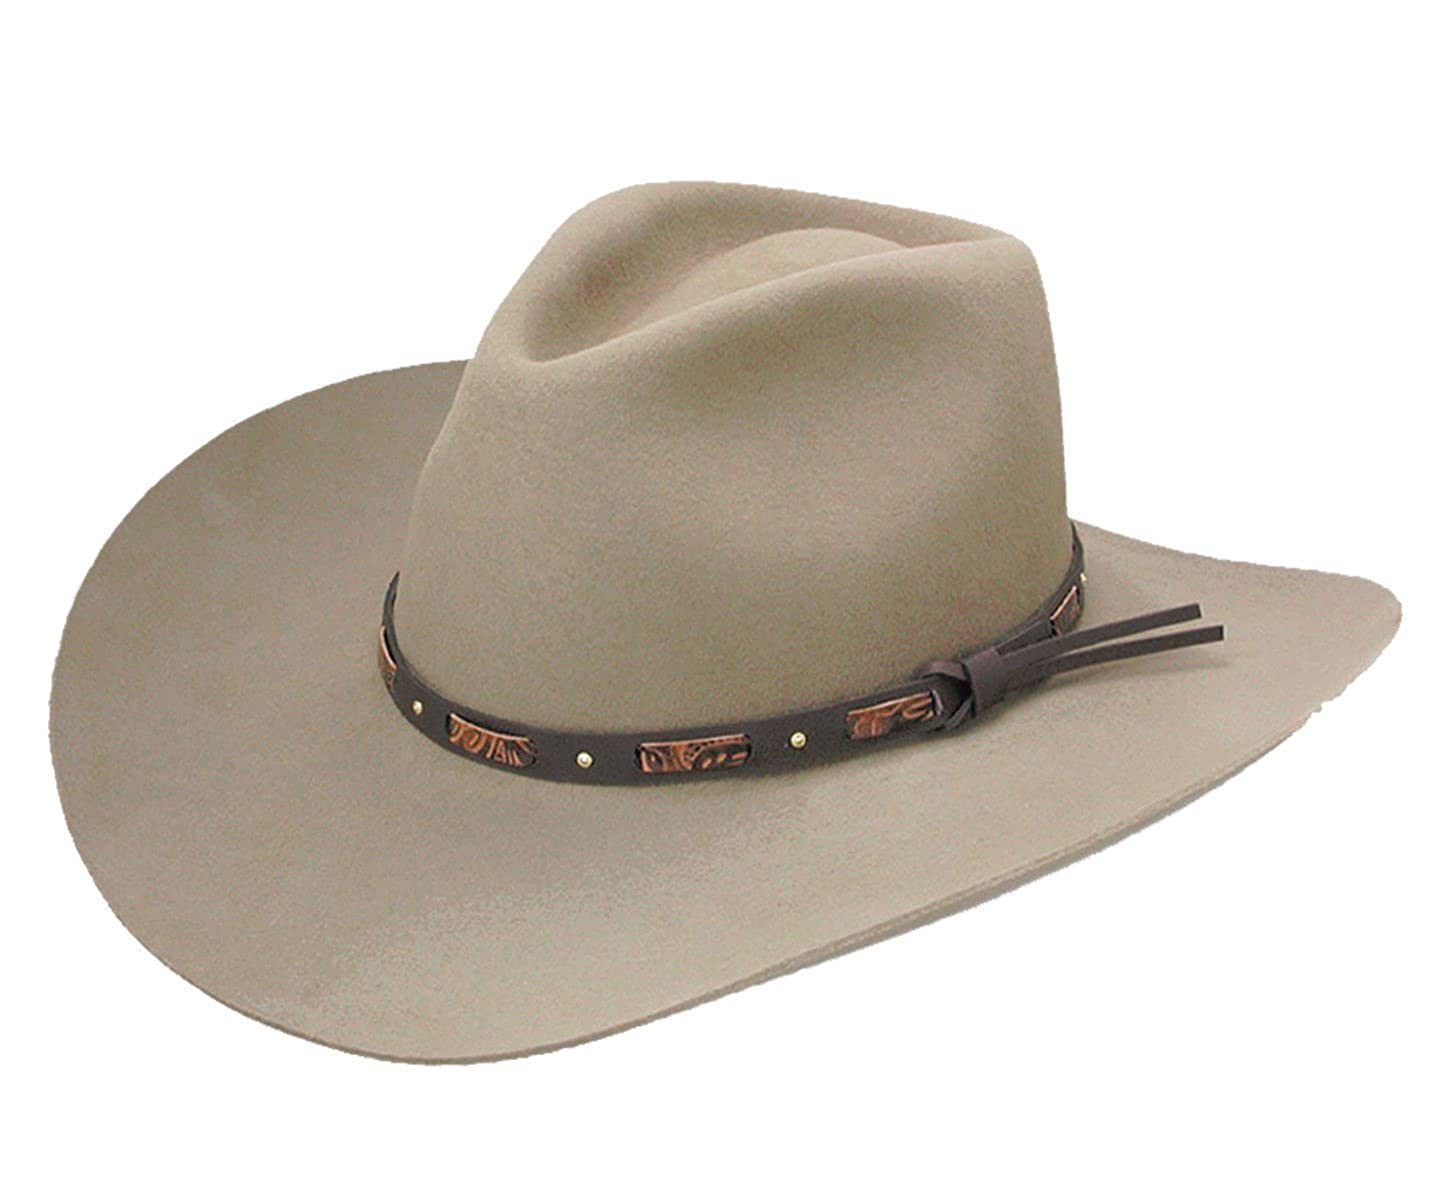 3ccf87fb227 Stetson Men s Hutchins 3X Wool Felt Cowboy Hat at Amazon Men s Clothing  store